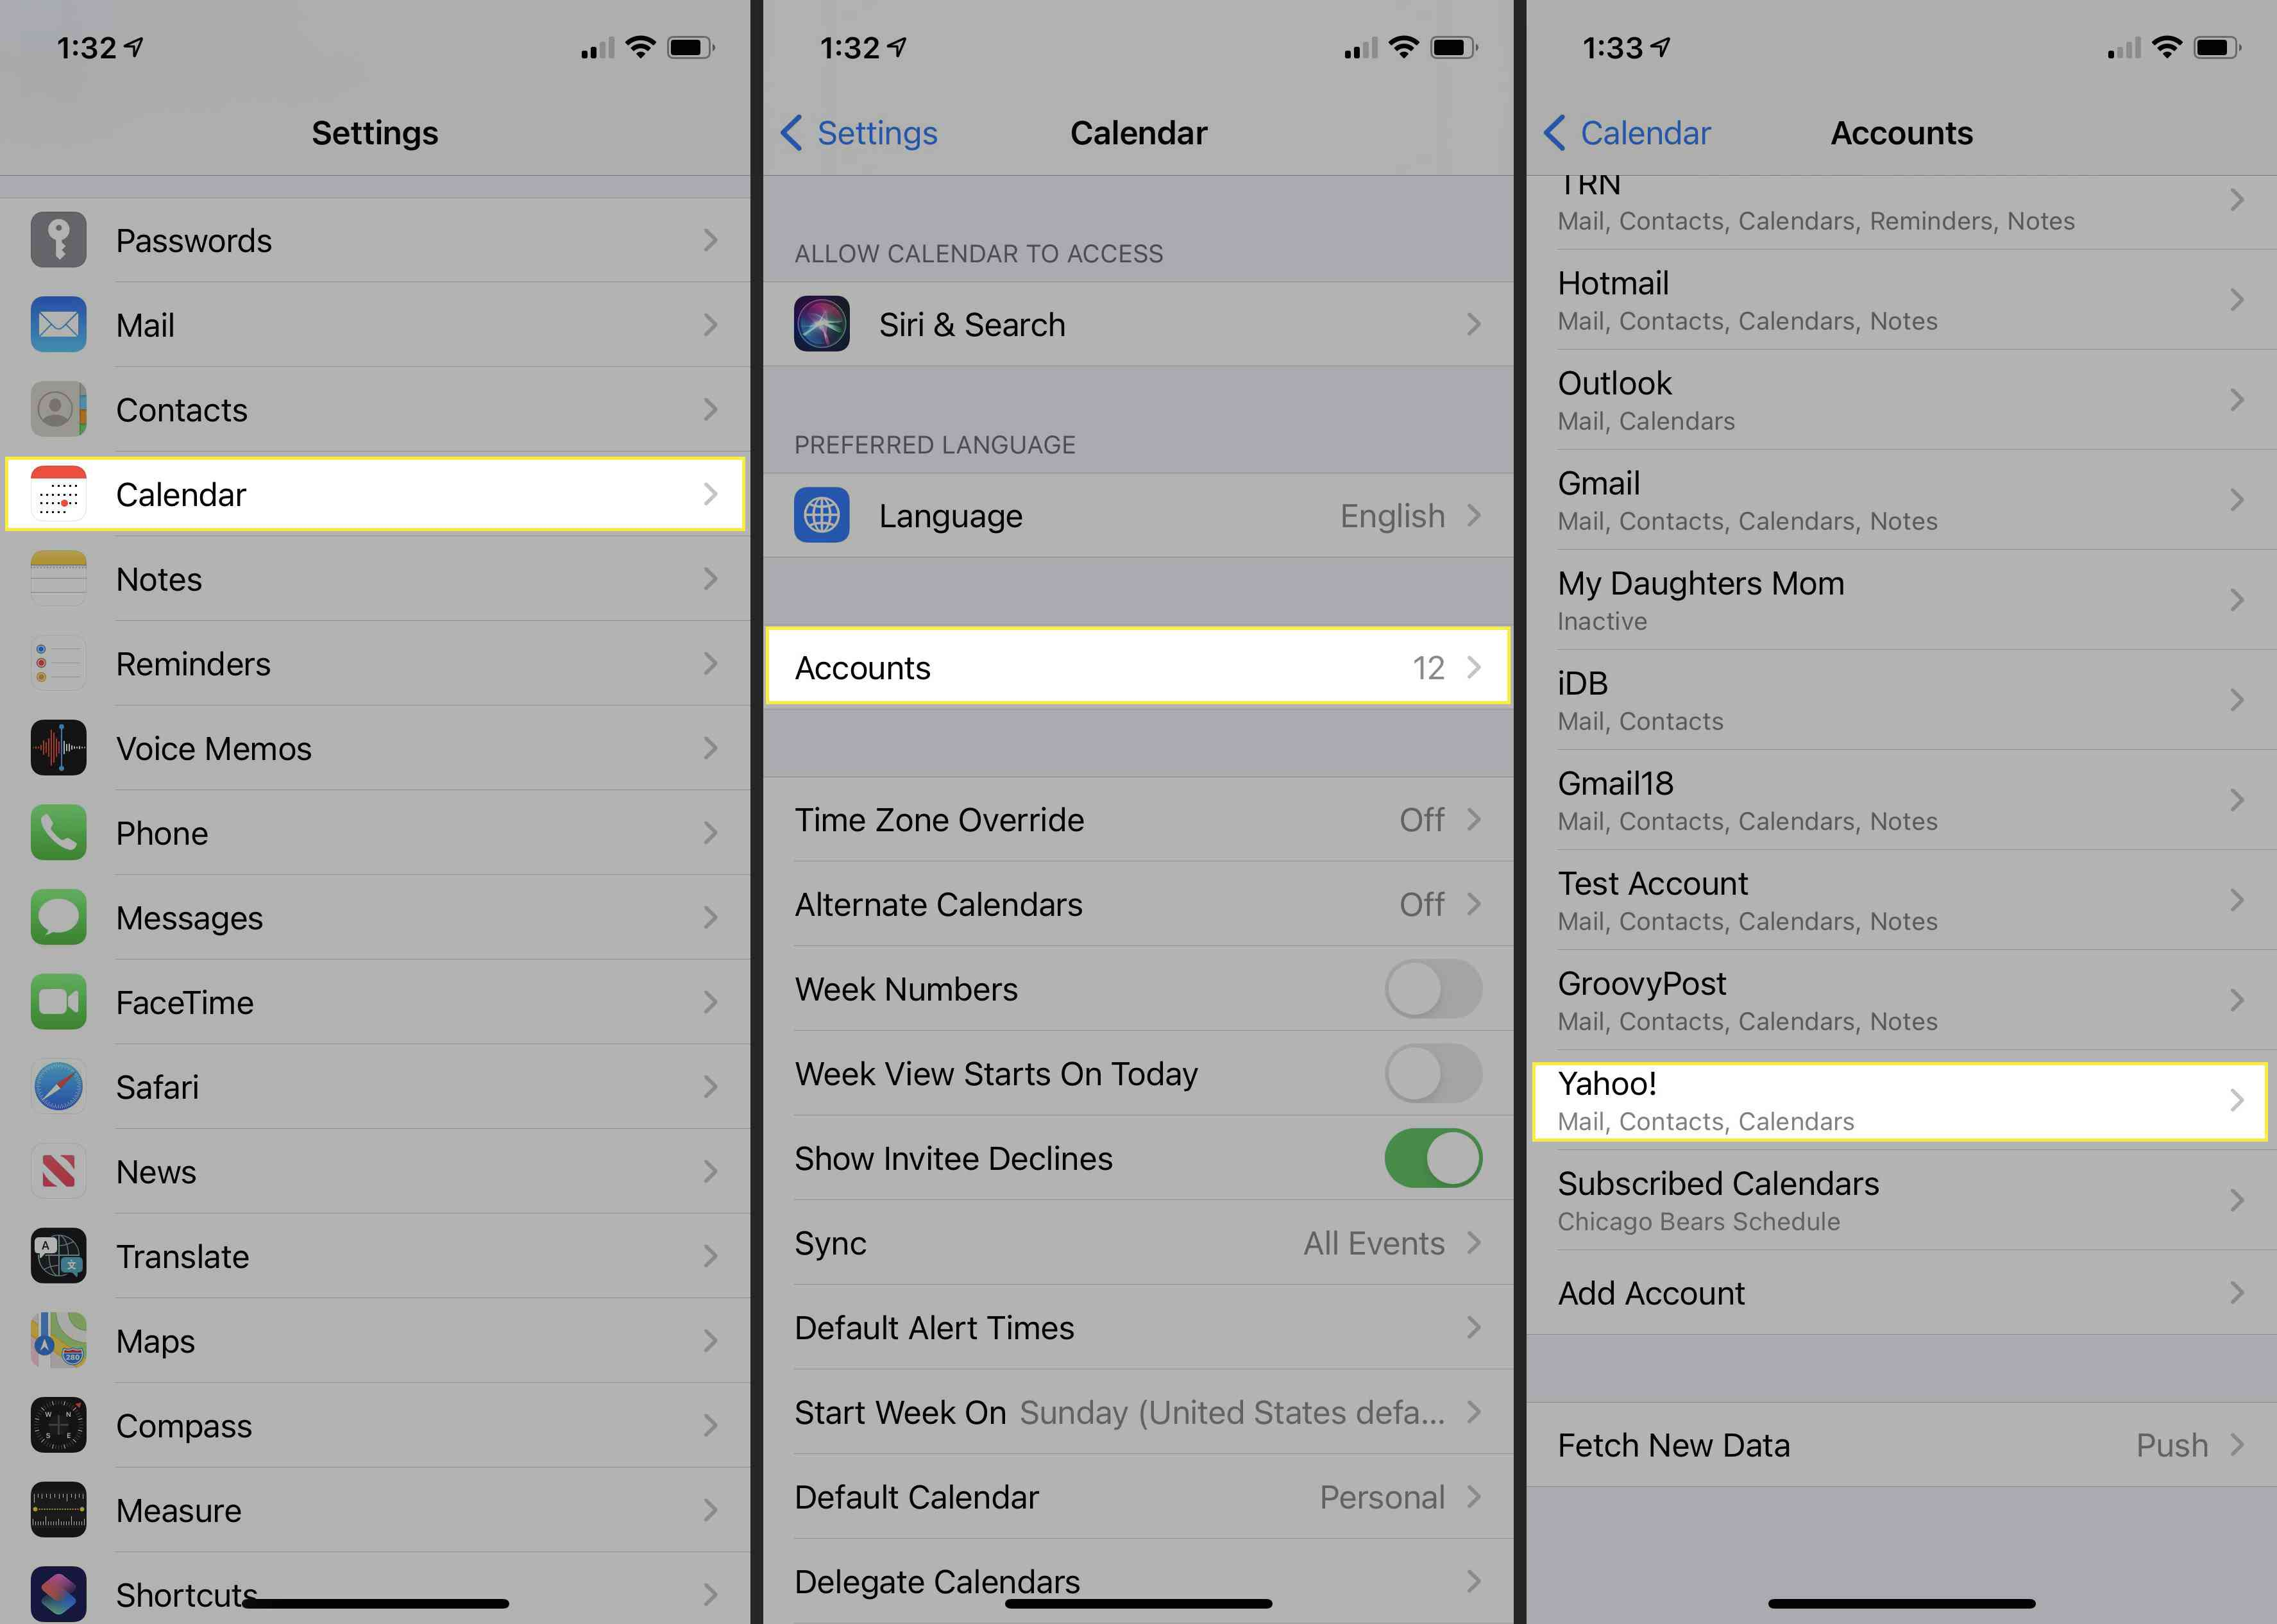 Steps to take to delete a calendar in the Settings app.